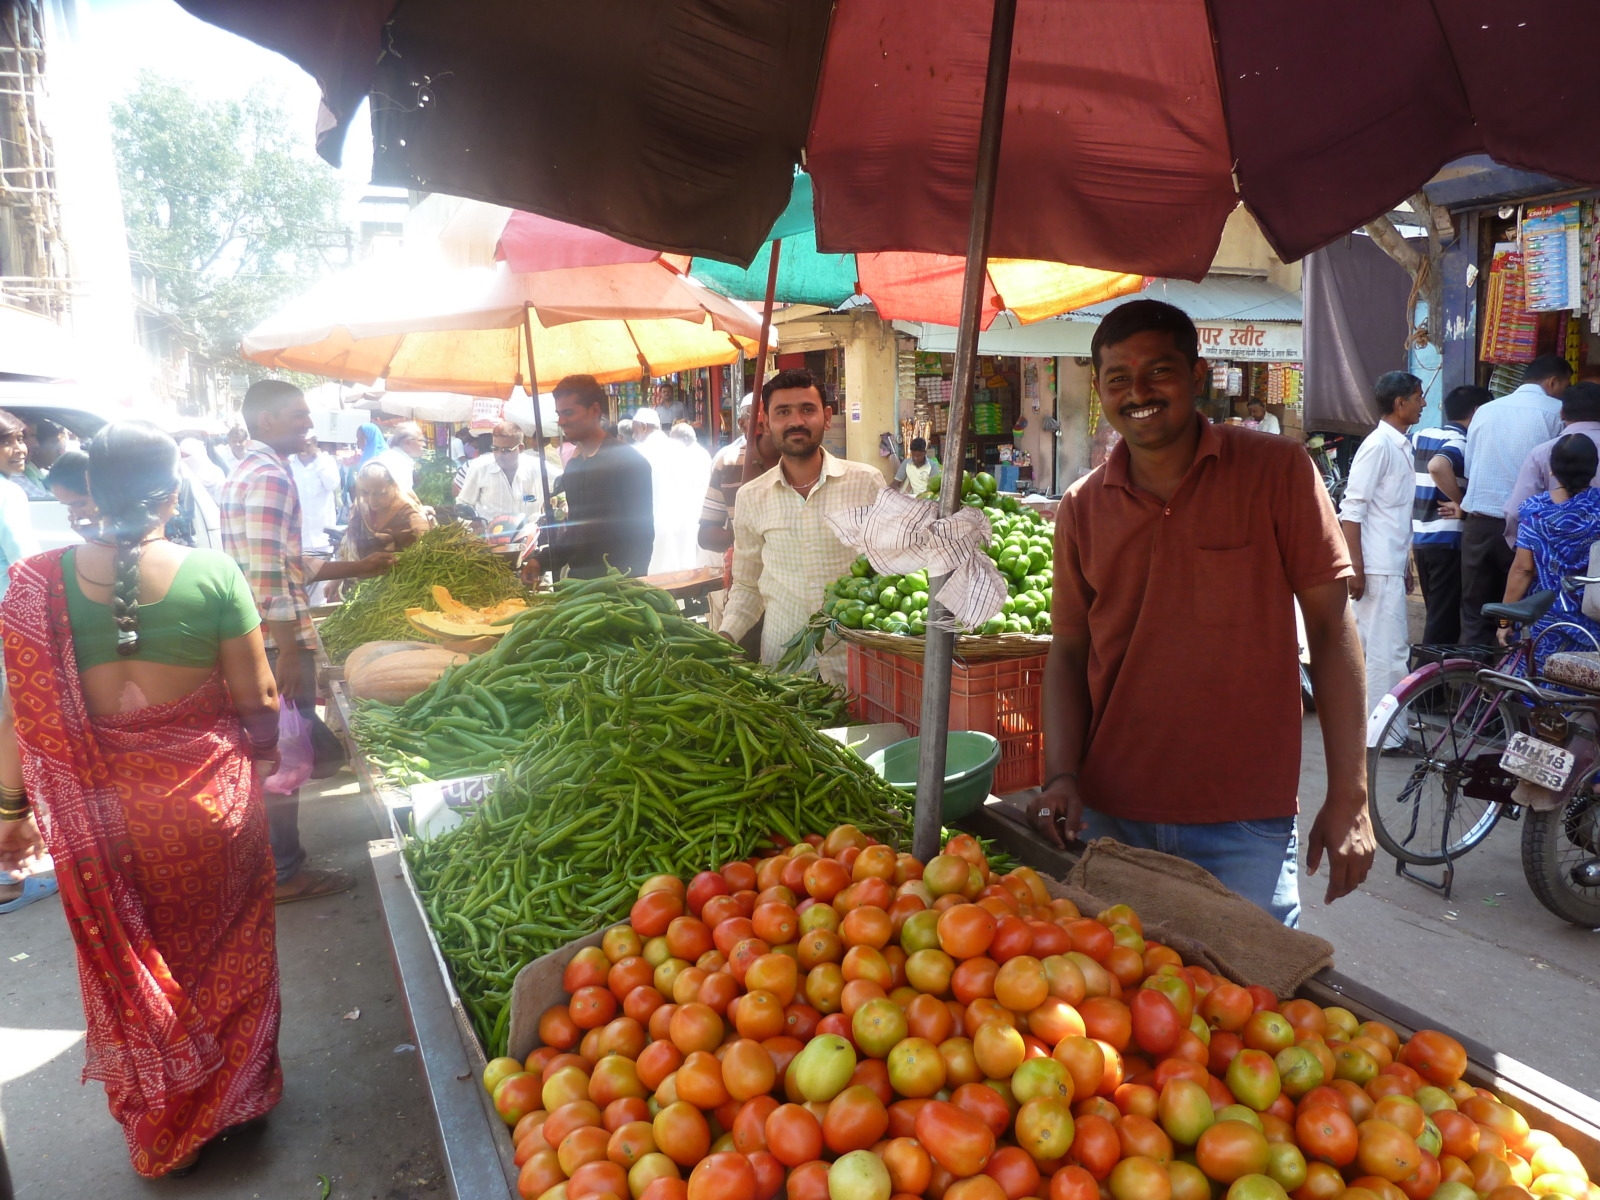 More happy faces in the market at Dhule.